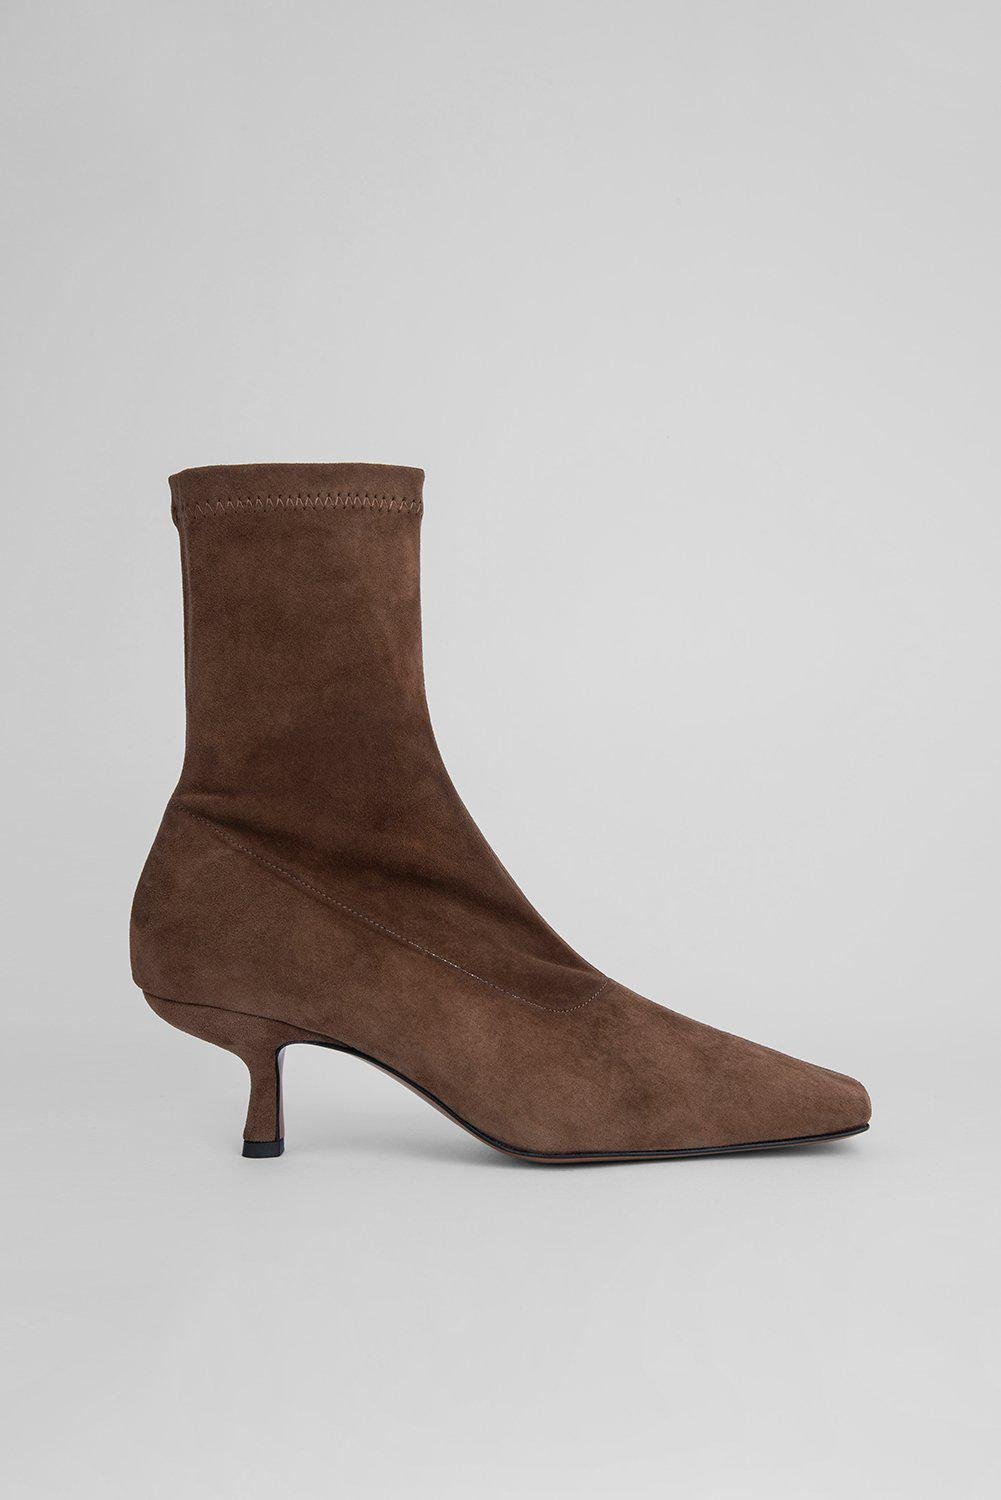 Audrey Wood Stretch Suede Leather